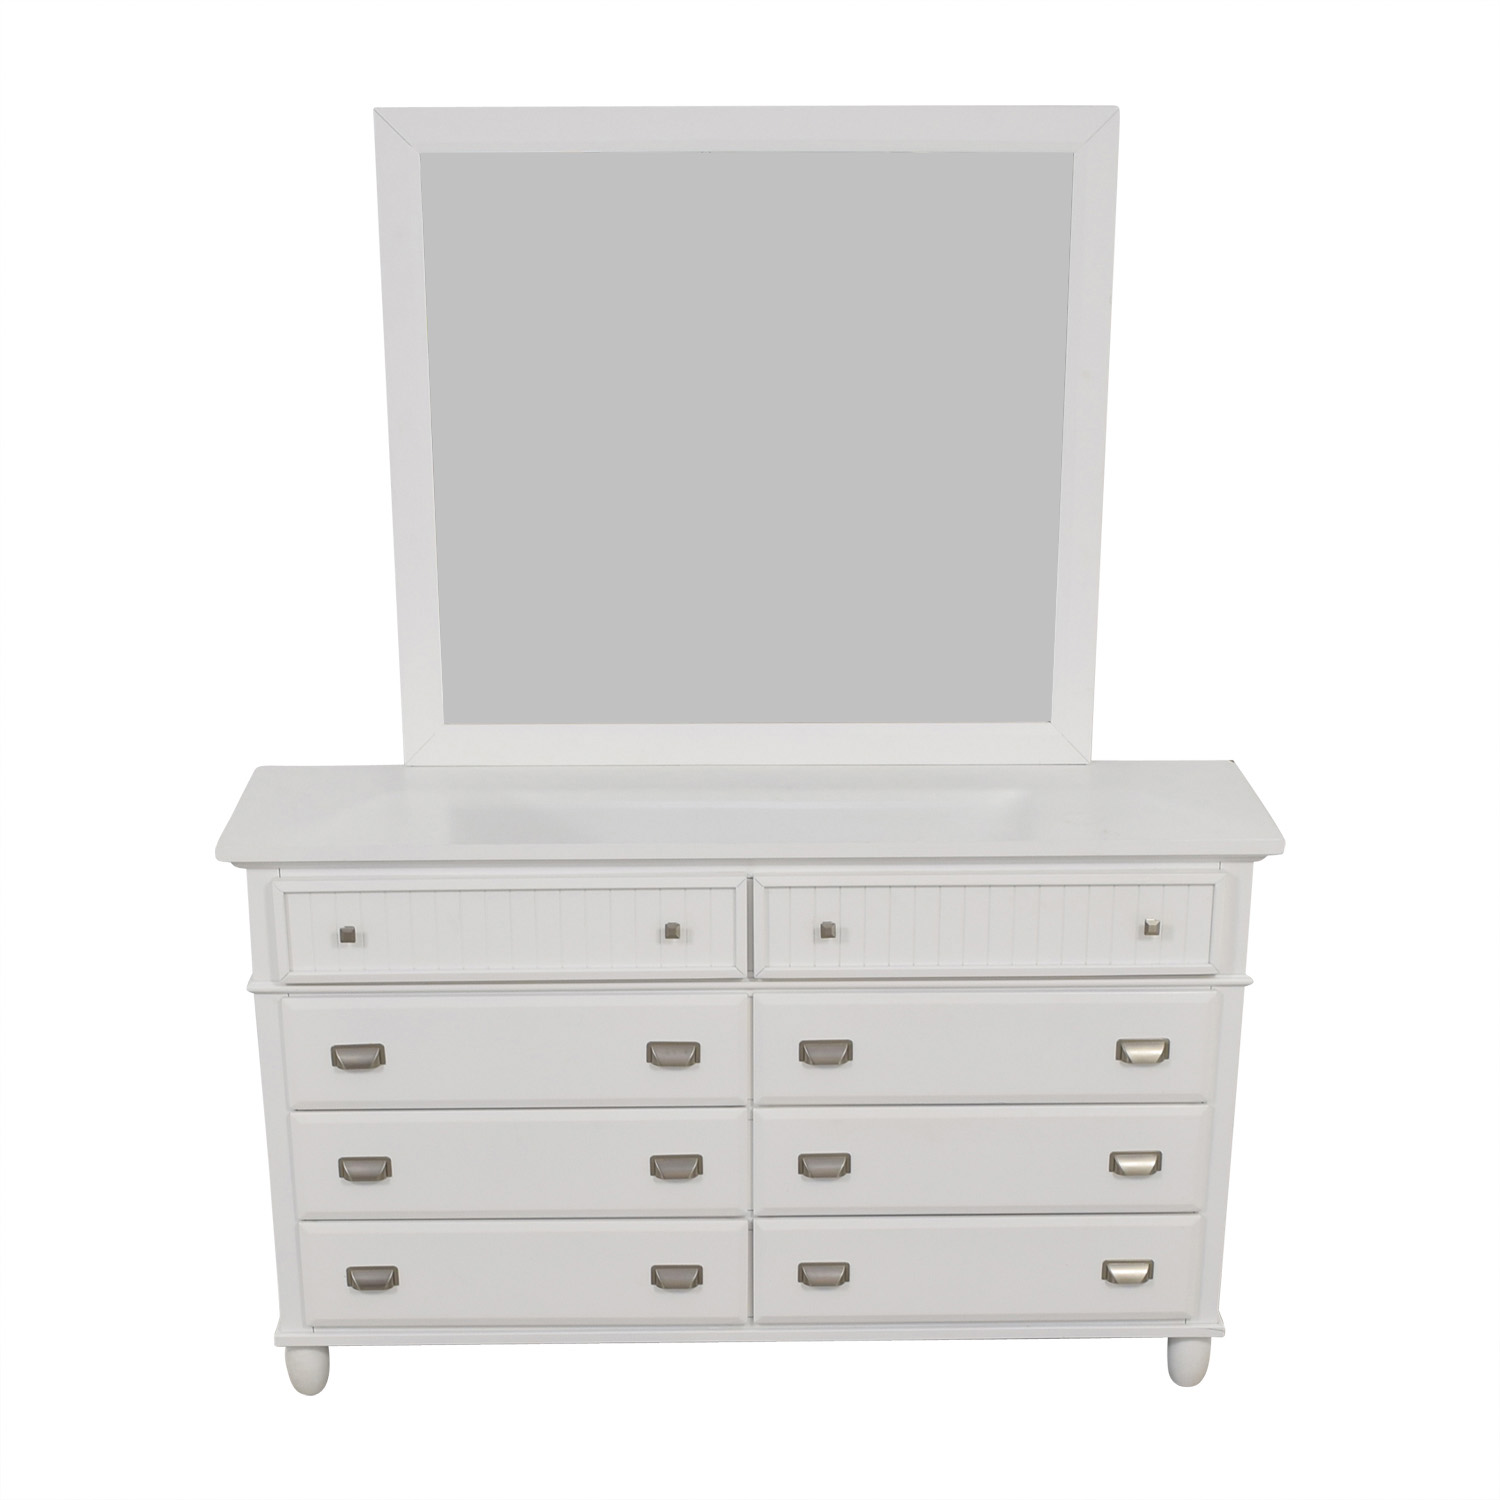 Bob's Furniture Bob's Furniture Spencer White Eight-Drawer Dresser with Mirror coupon